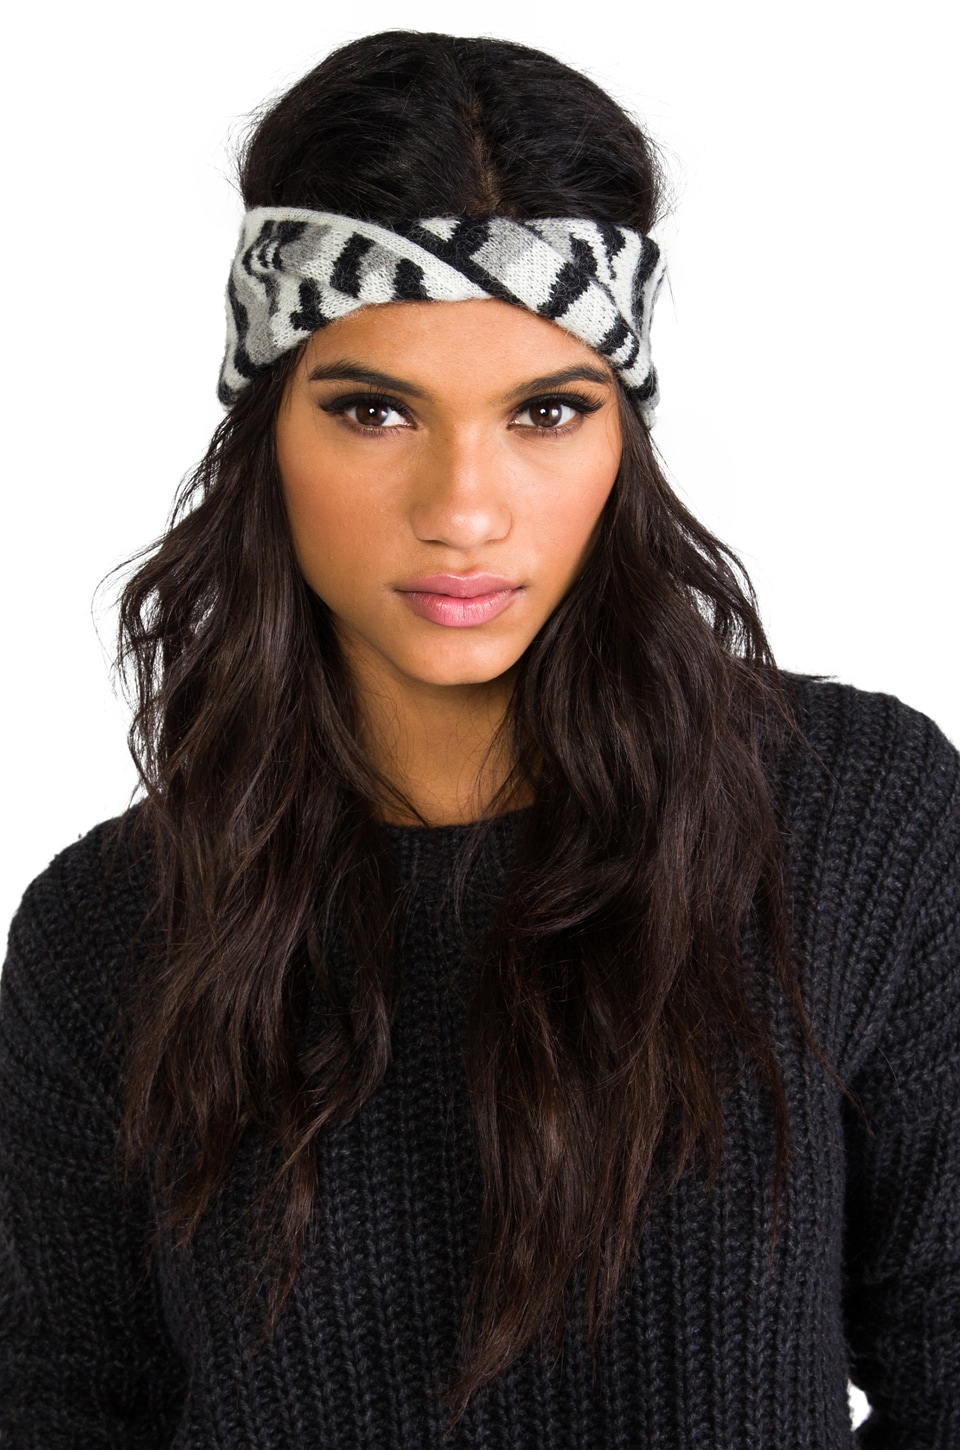 Diane von Furstenberg Dayla Animal Leather Turban in Black/White/Light Heather Grey